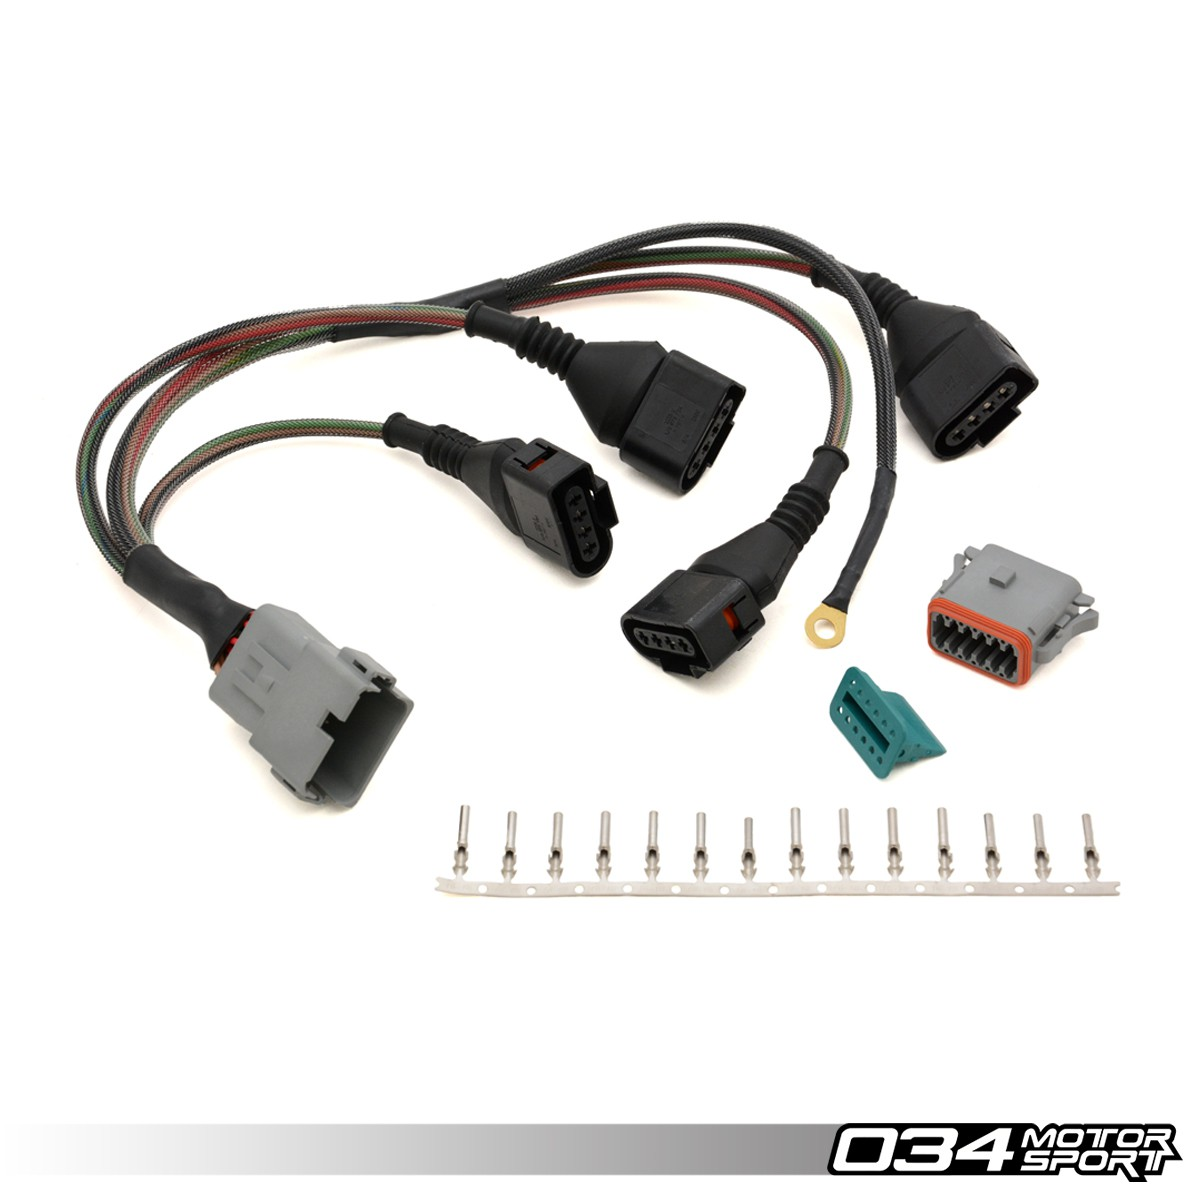 repair update harness audi volkswagen 1 8t with 4 wire coils 034 Wiring Harness Colors repair update harness audi volkswagen 1 8t with 4 wire coils